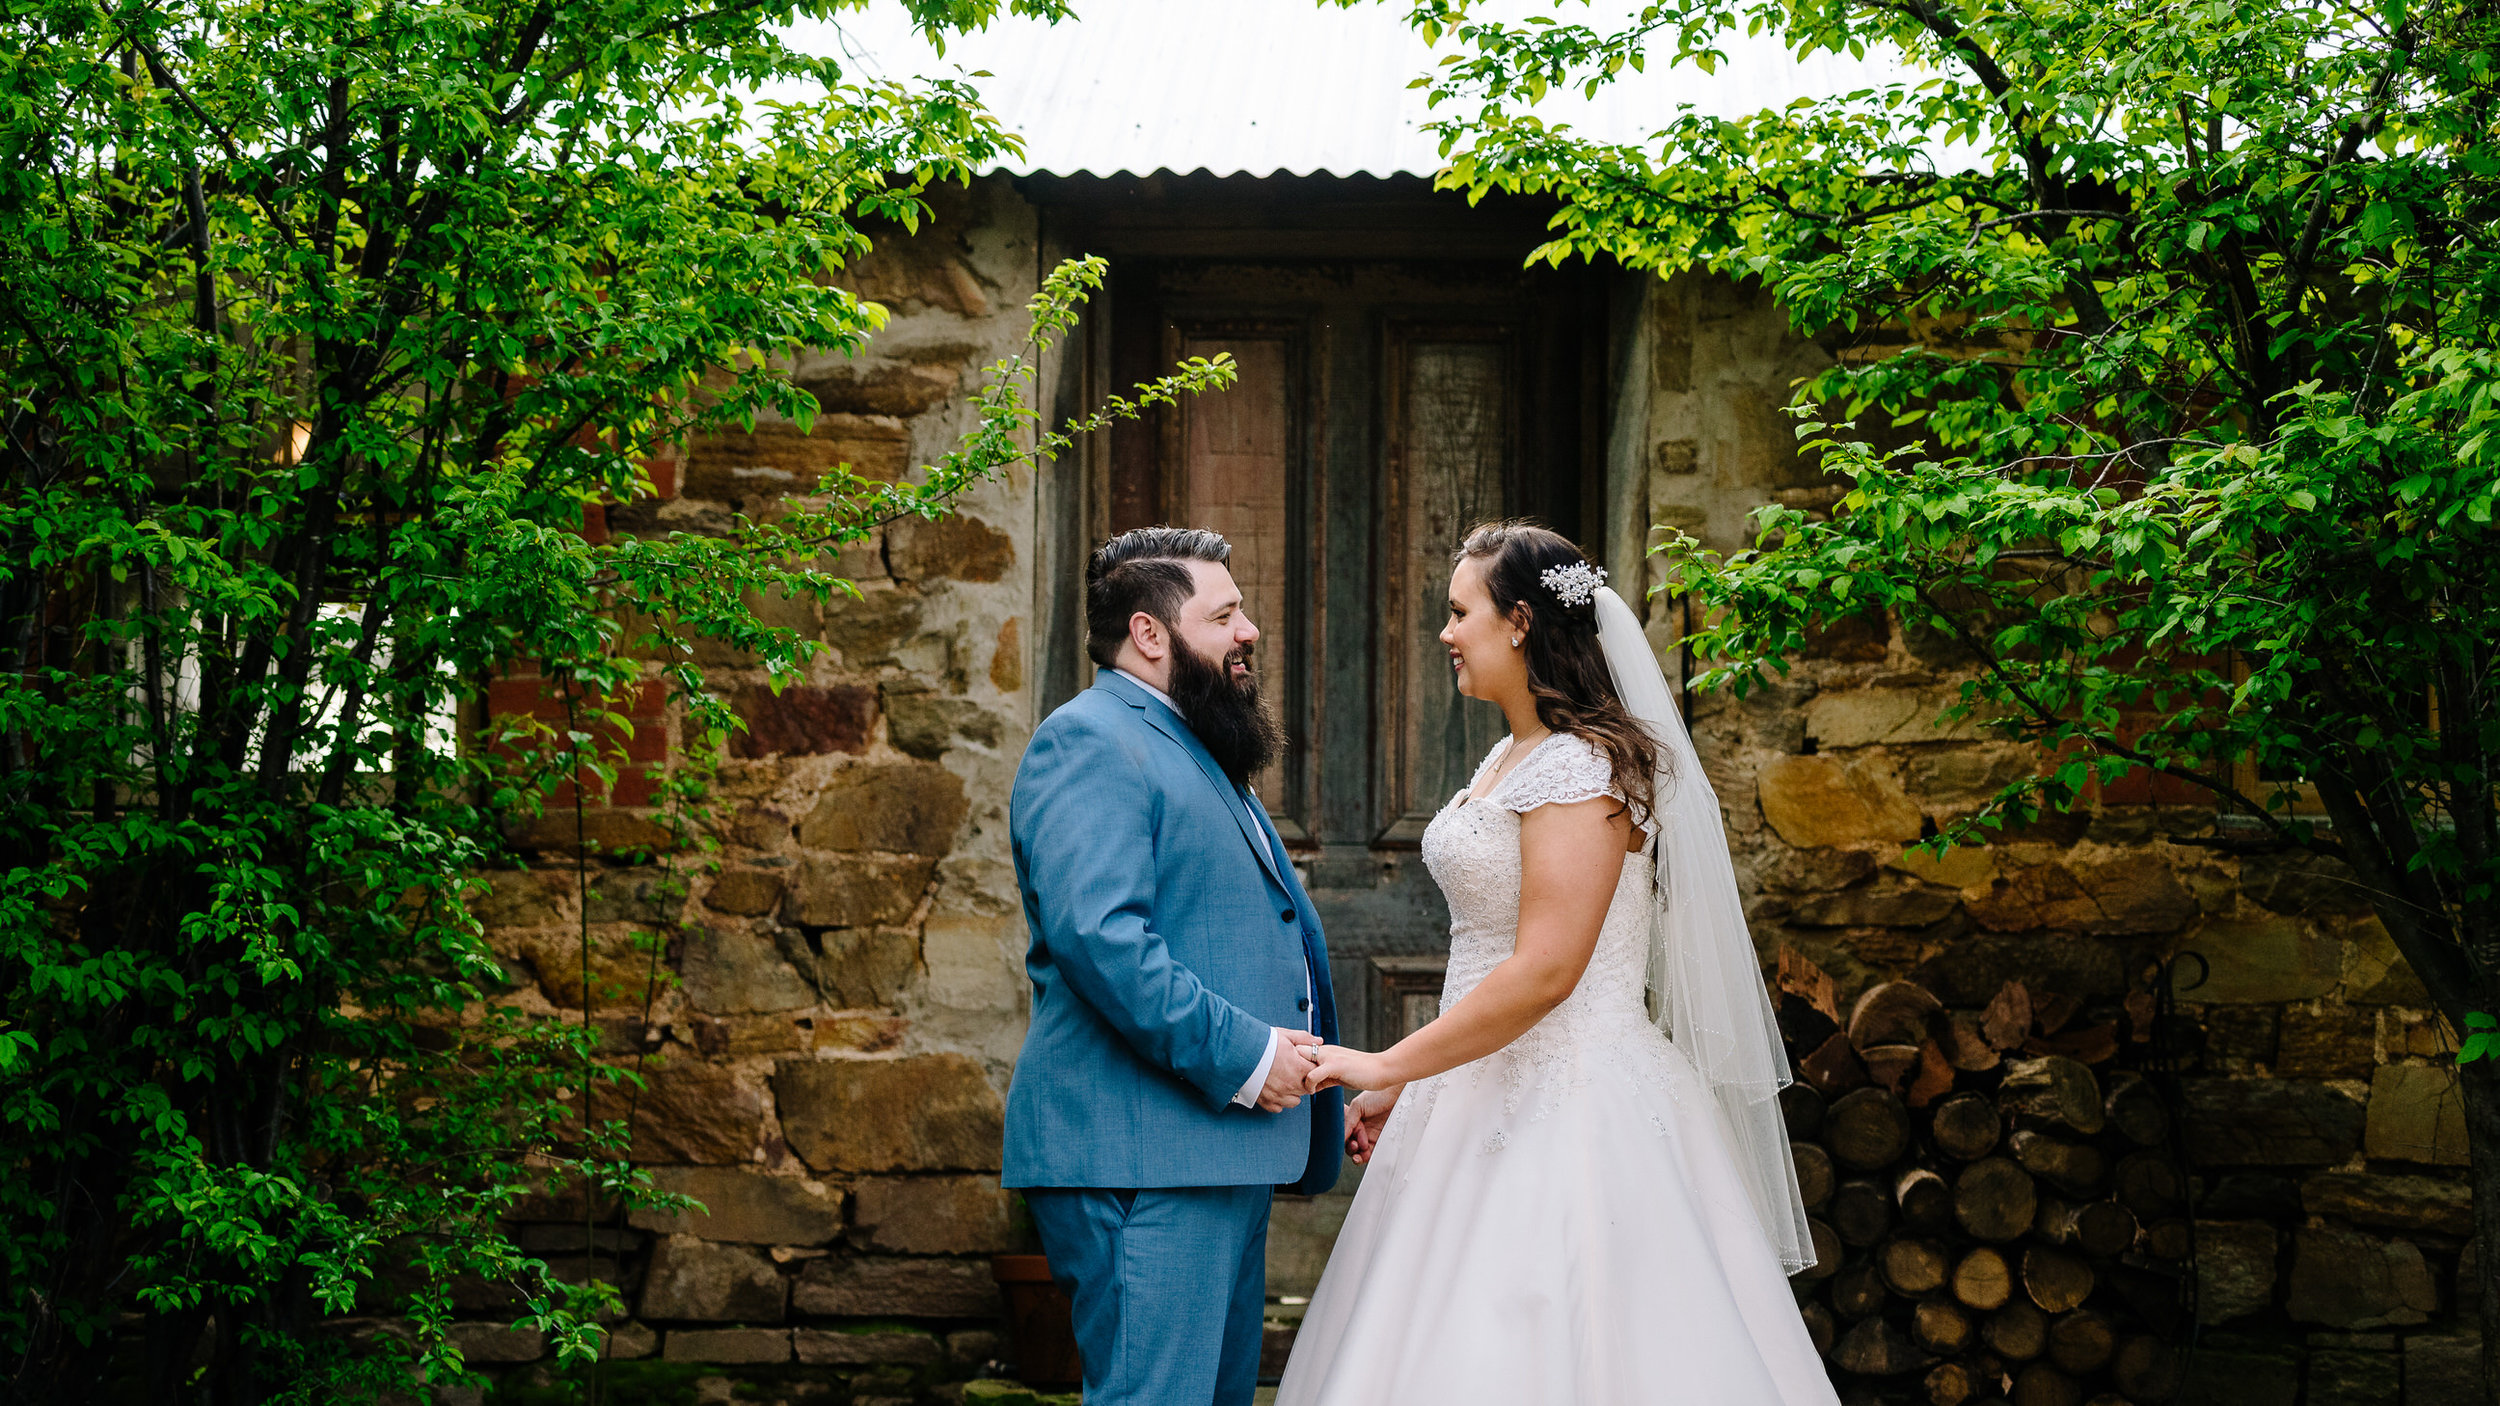 Chateau_Dore_Wedding_Photography_Justin_and_Jim-180.JPG